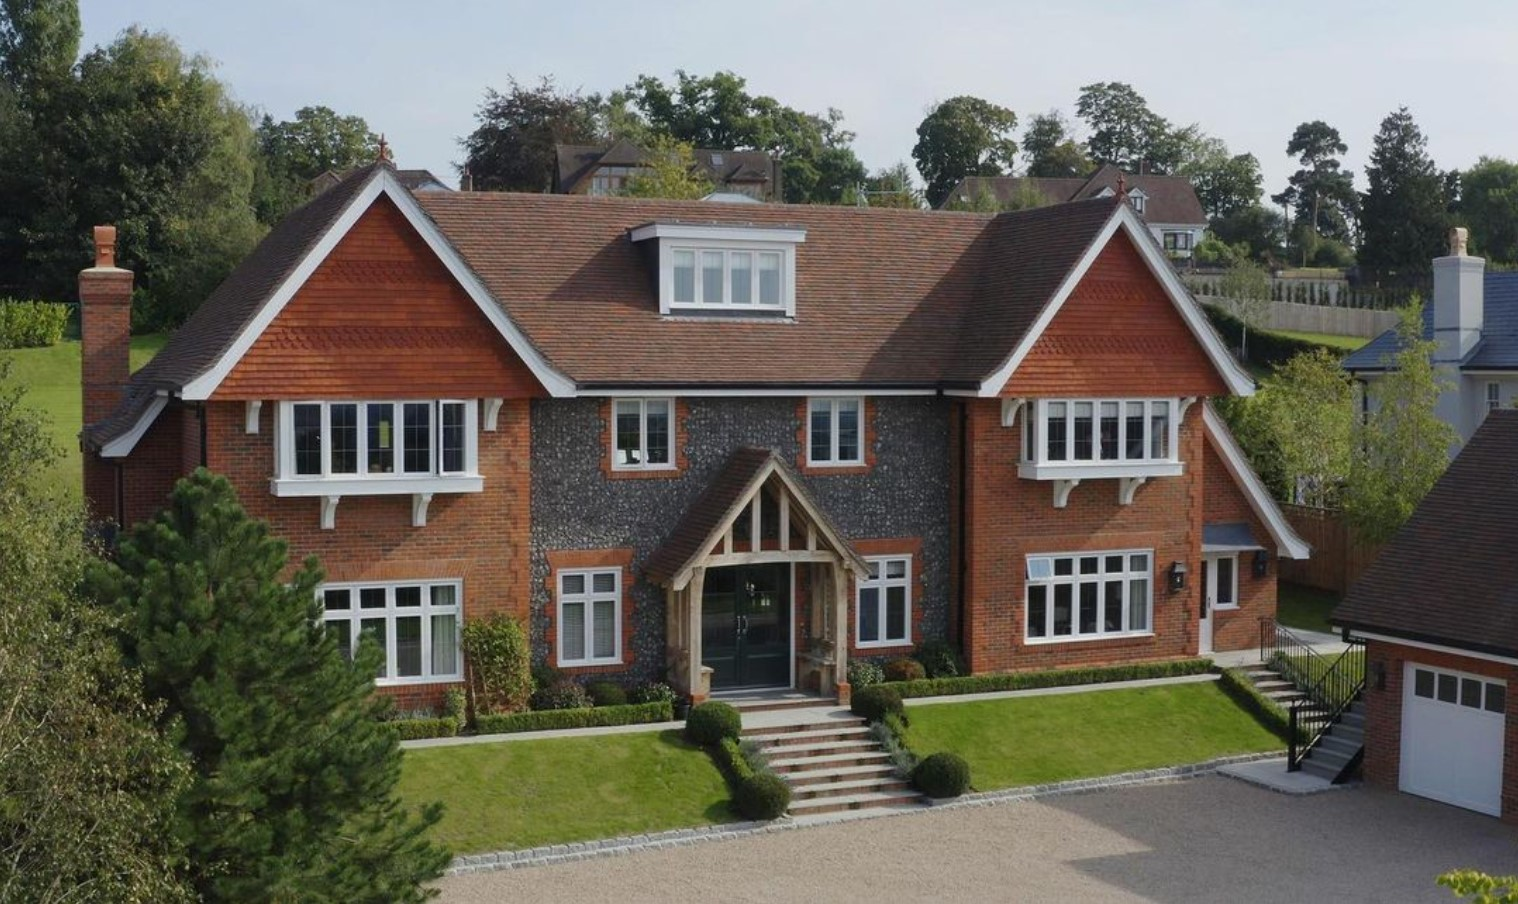 A tudor style red brick and tile hanging home